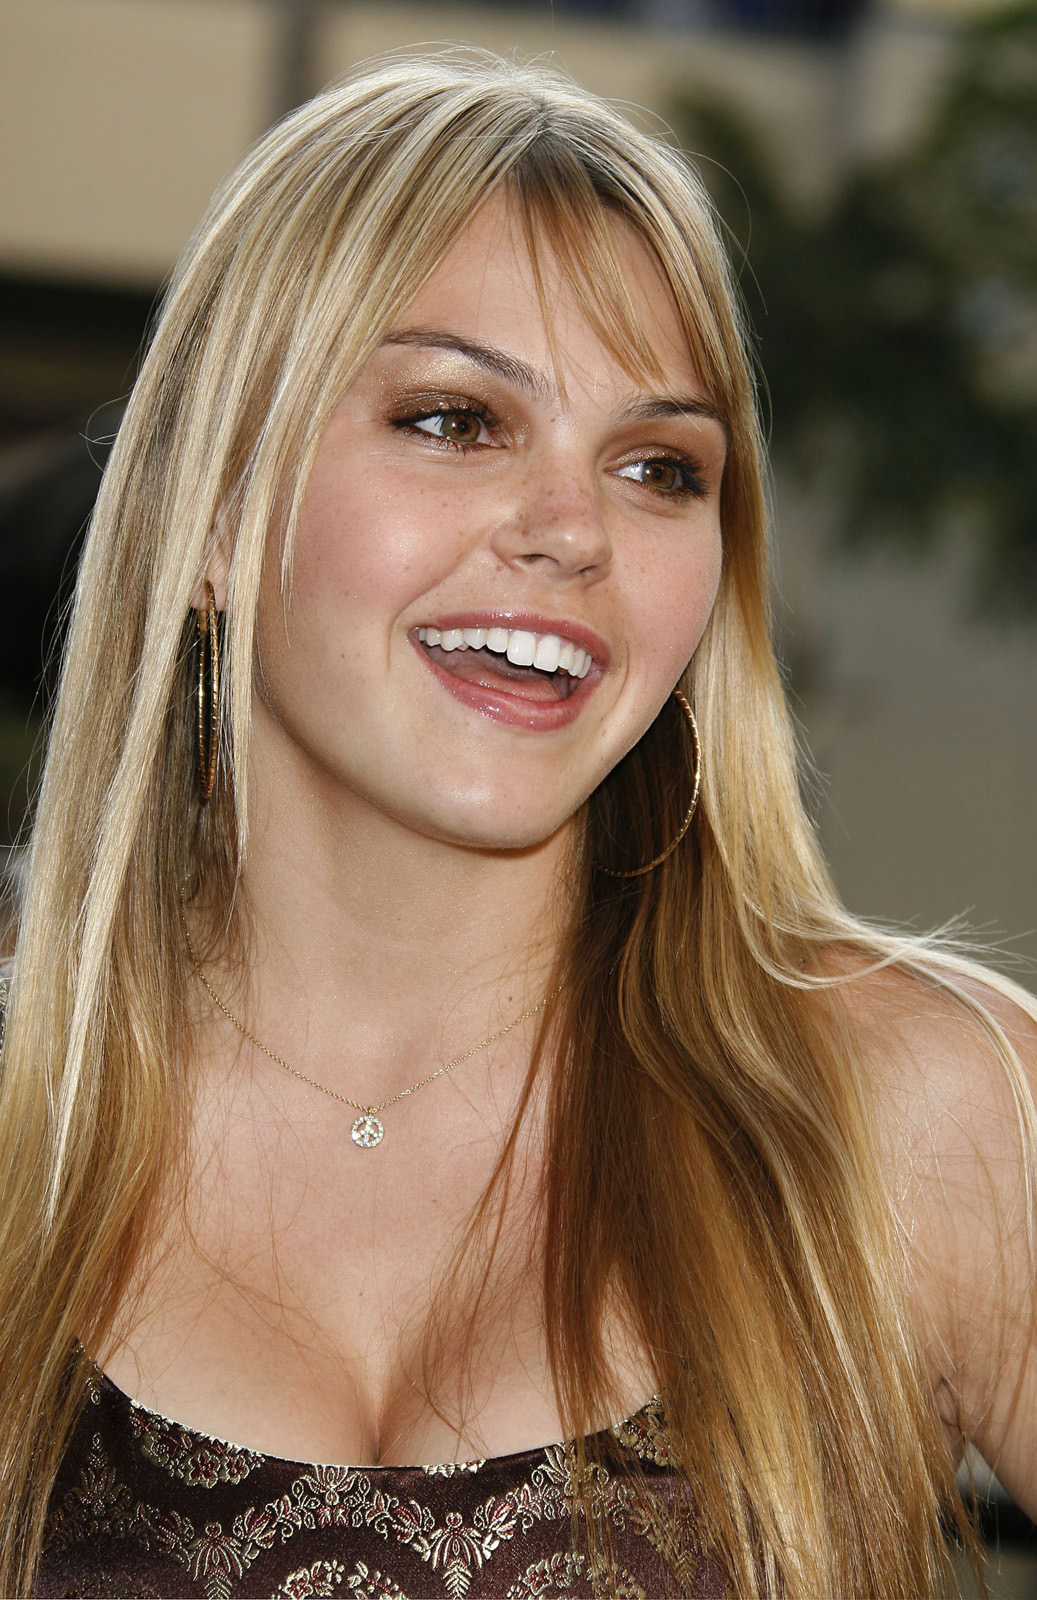 Aimee Teegarden Photo Gallery